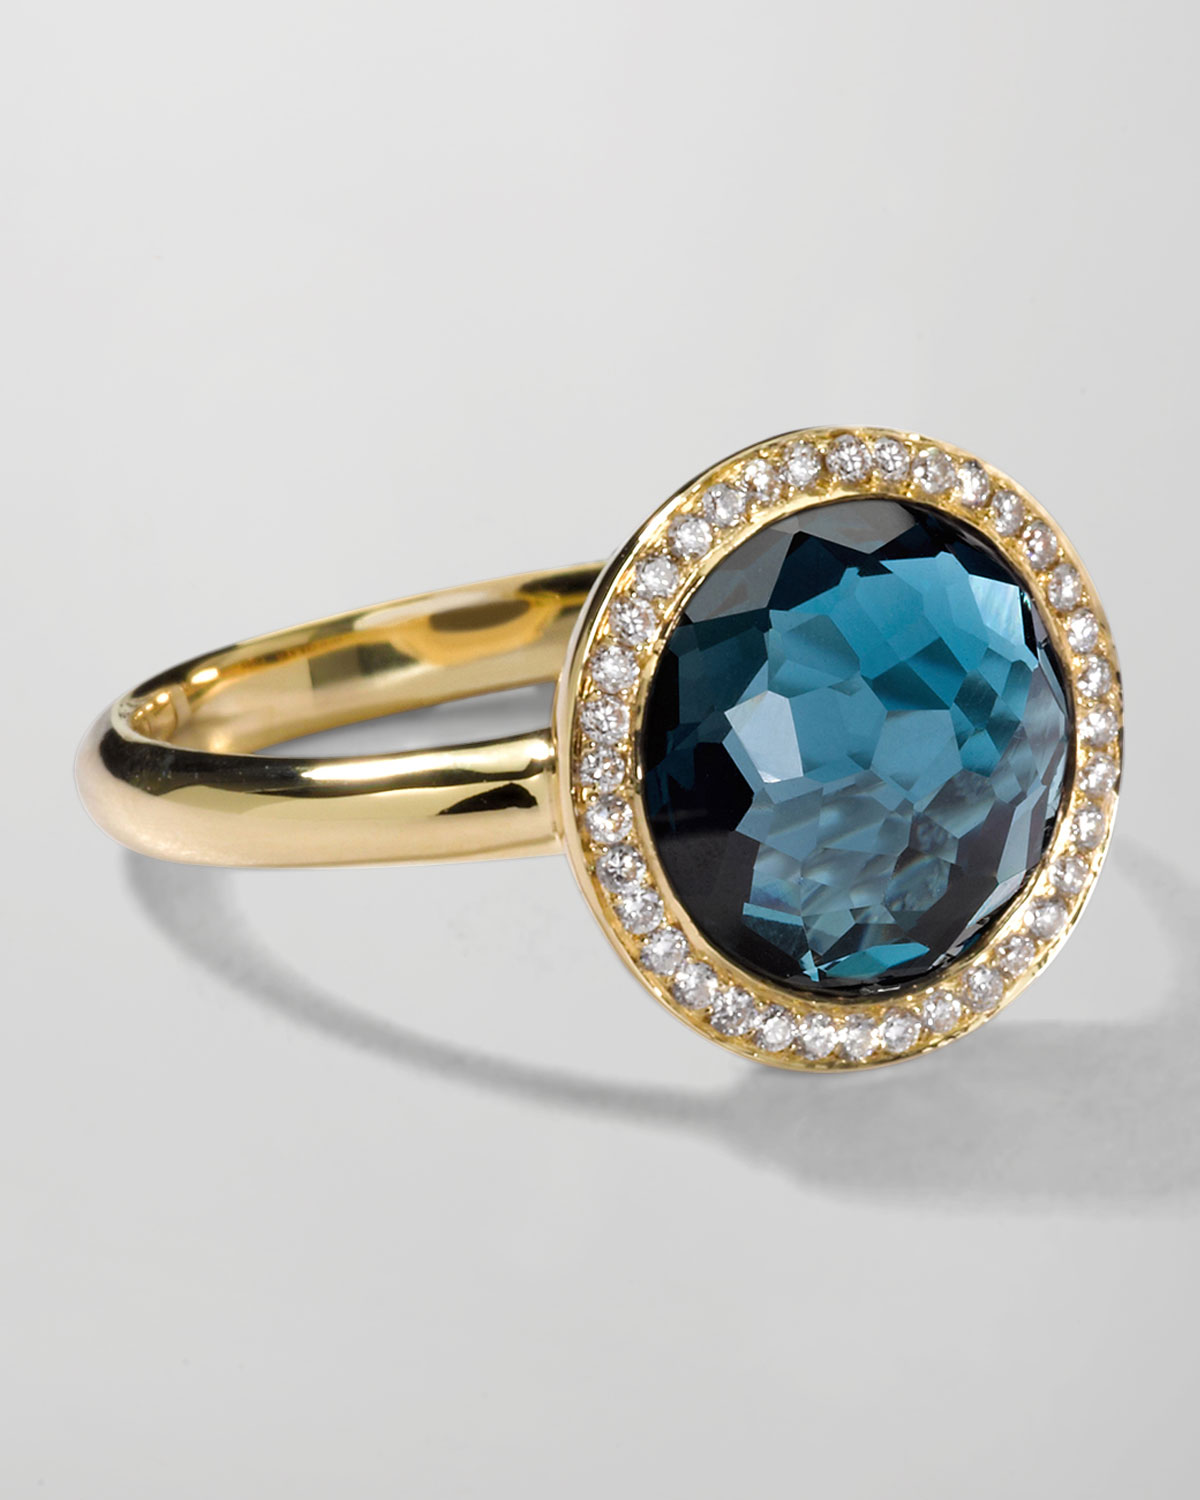 Ippolita 18k Gold Rock Candy Lollipop Ring in Blue Topaz with DIamonds yGkMDDB7fU